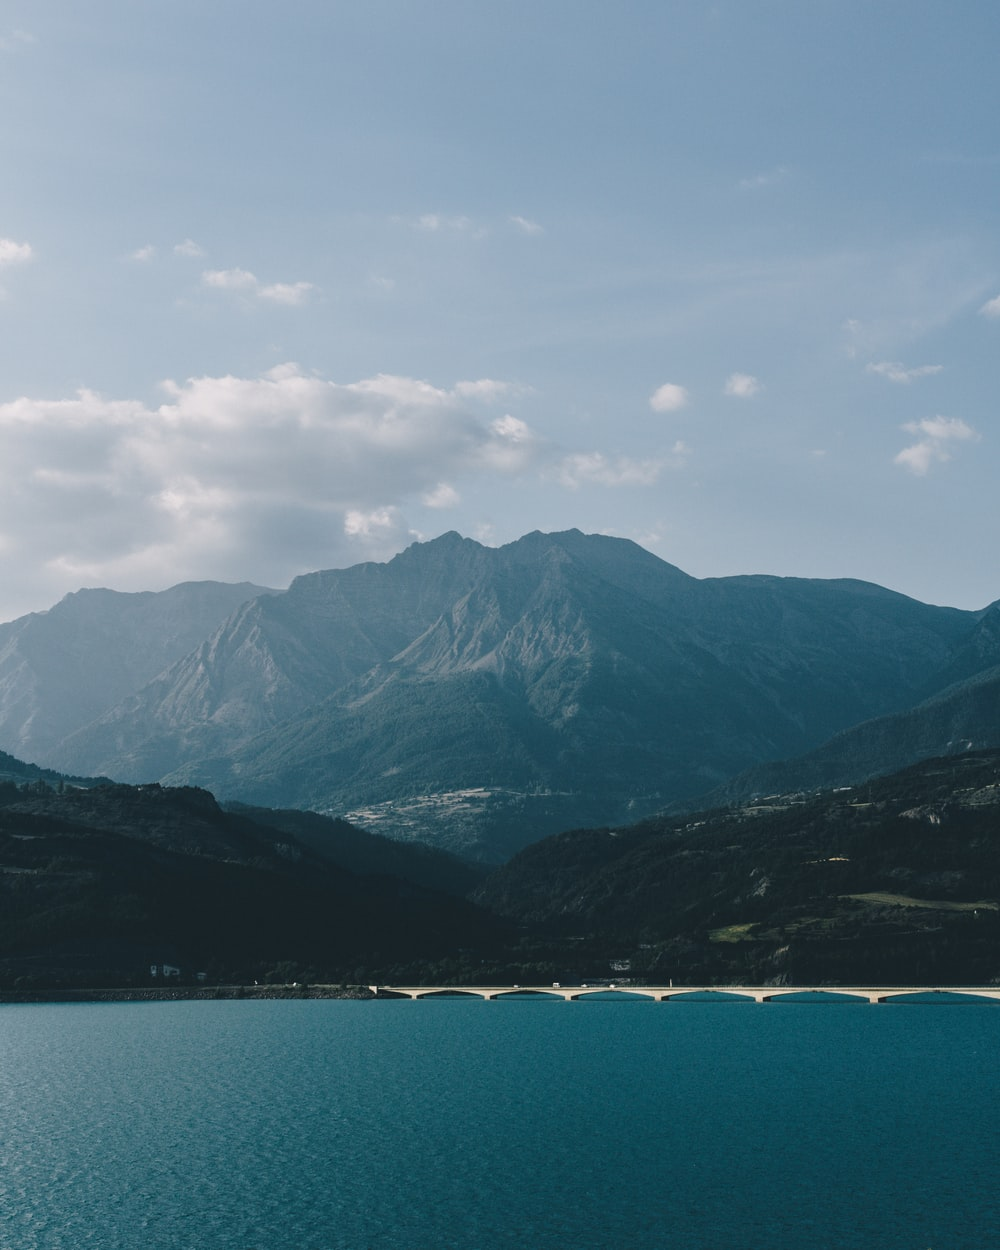 body of water and mountain